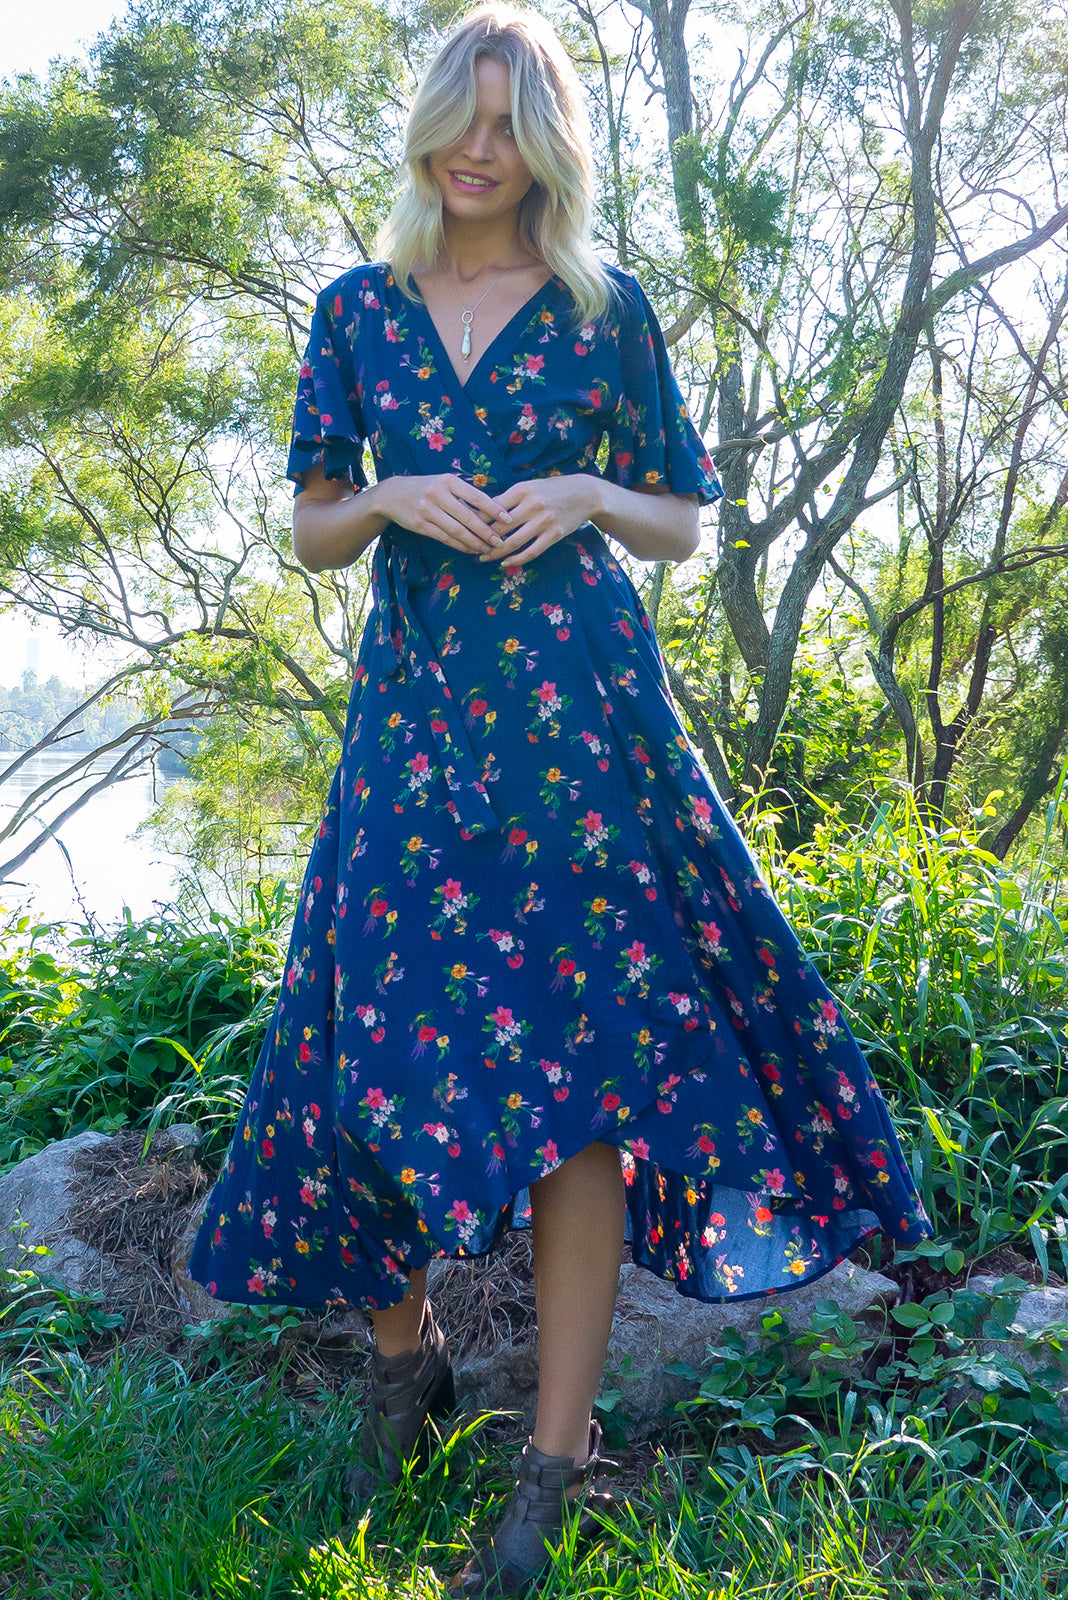 The Petal Blue Elderberry Maxi Wrap Dress features plunging neckline, ties at waist, elasticised waistband at back, floaty petal sleeves, side pockets and 100% rayon in rich navy base with multicoloured floral print.